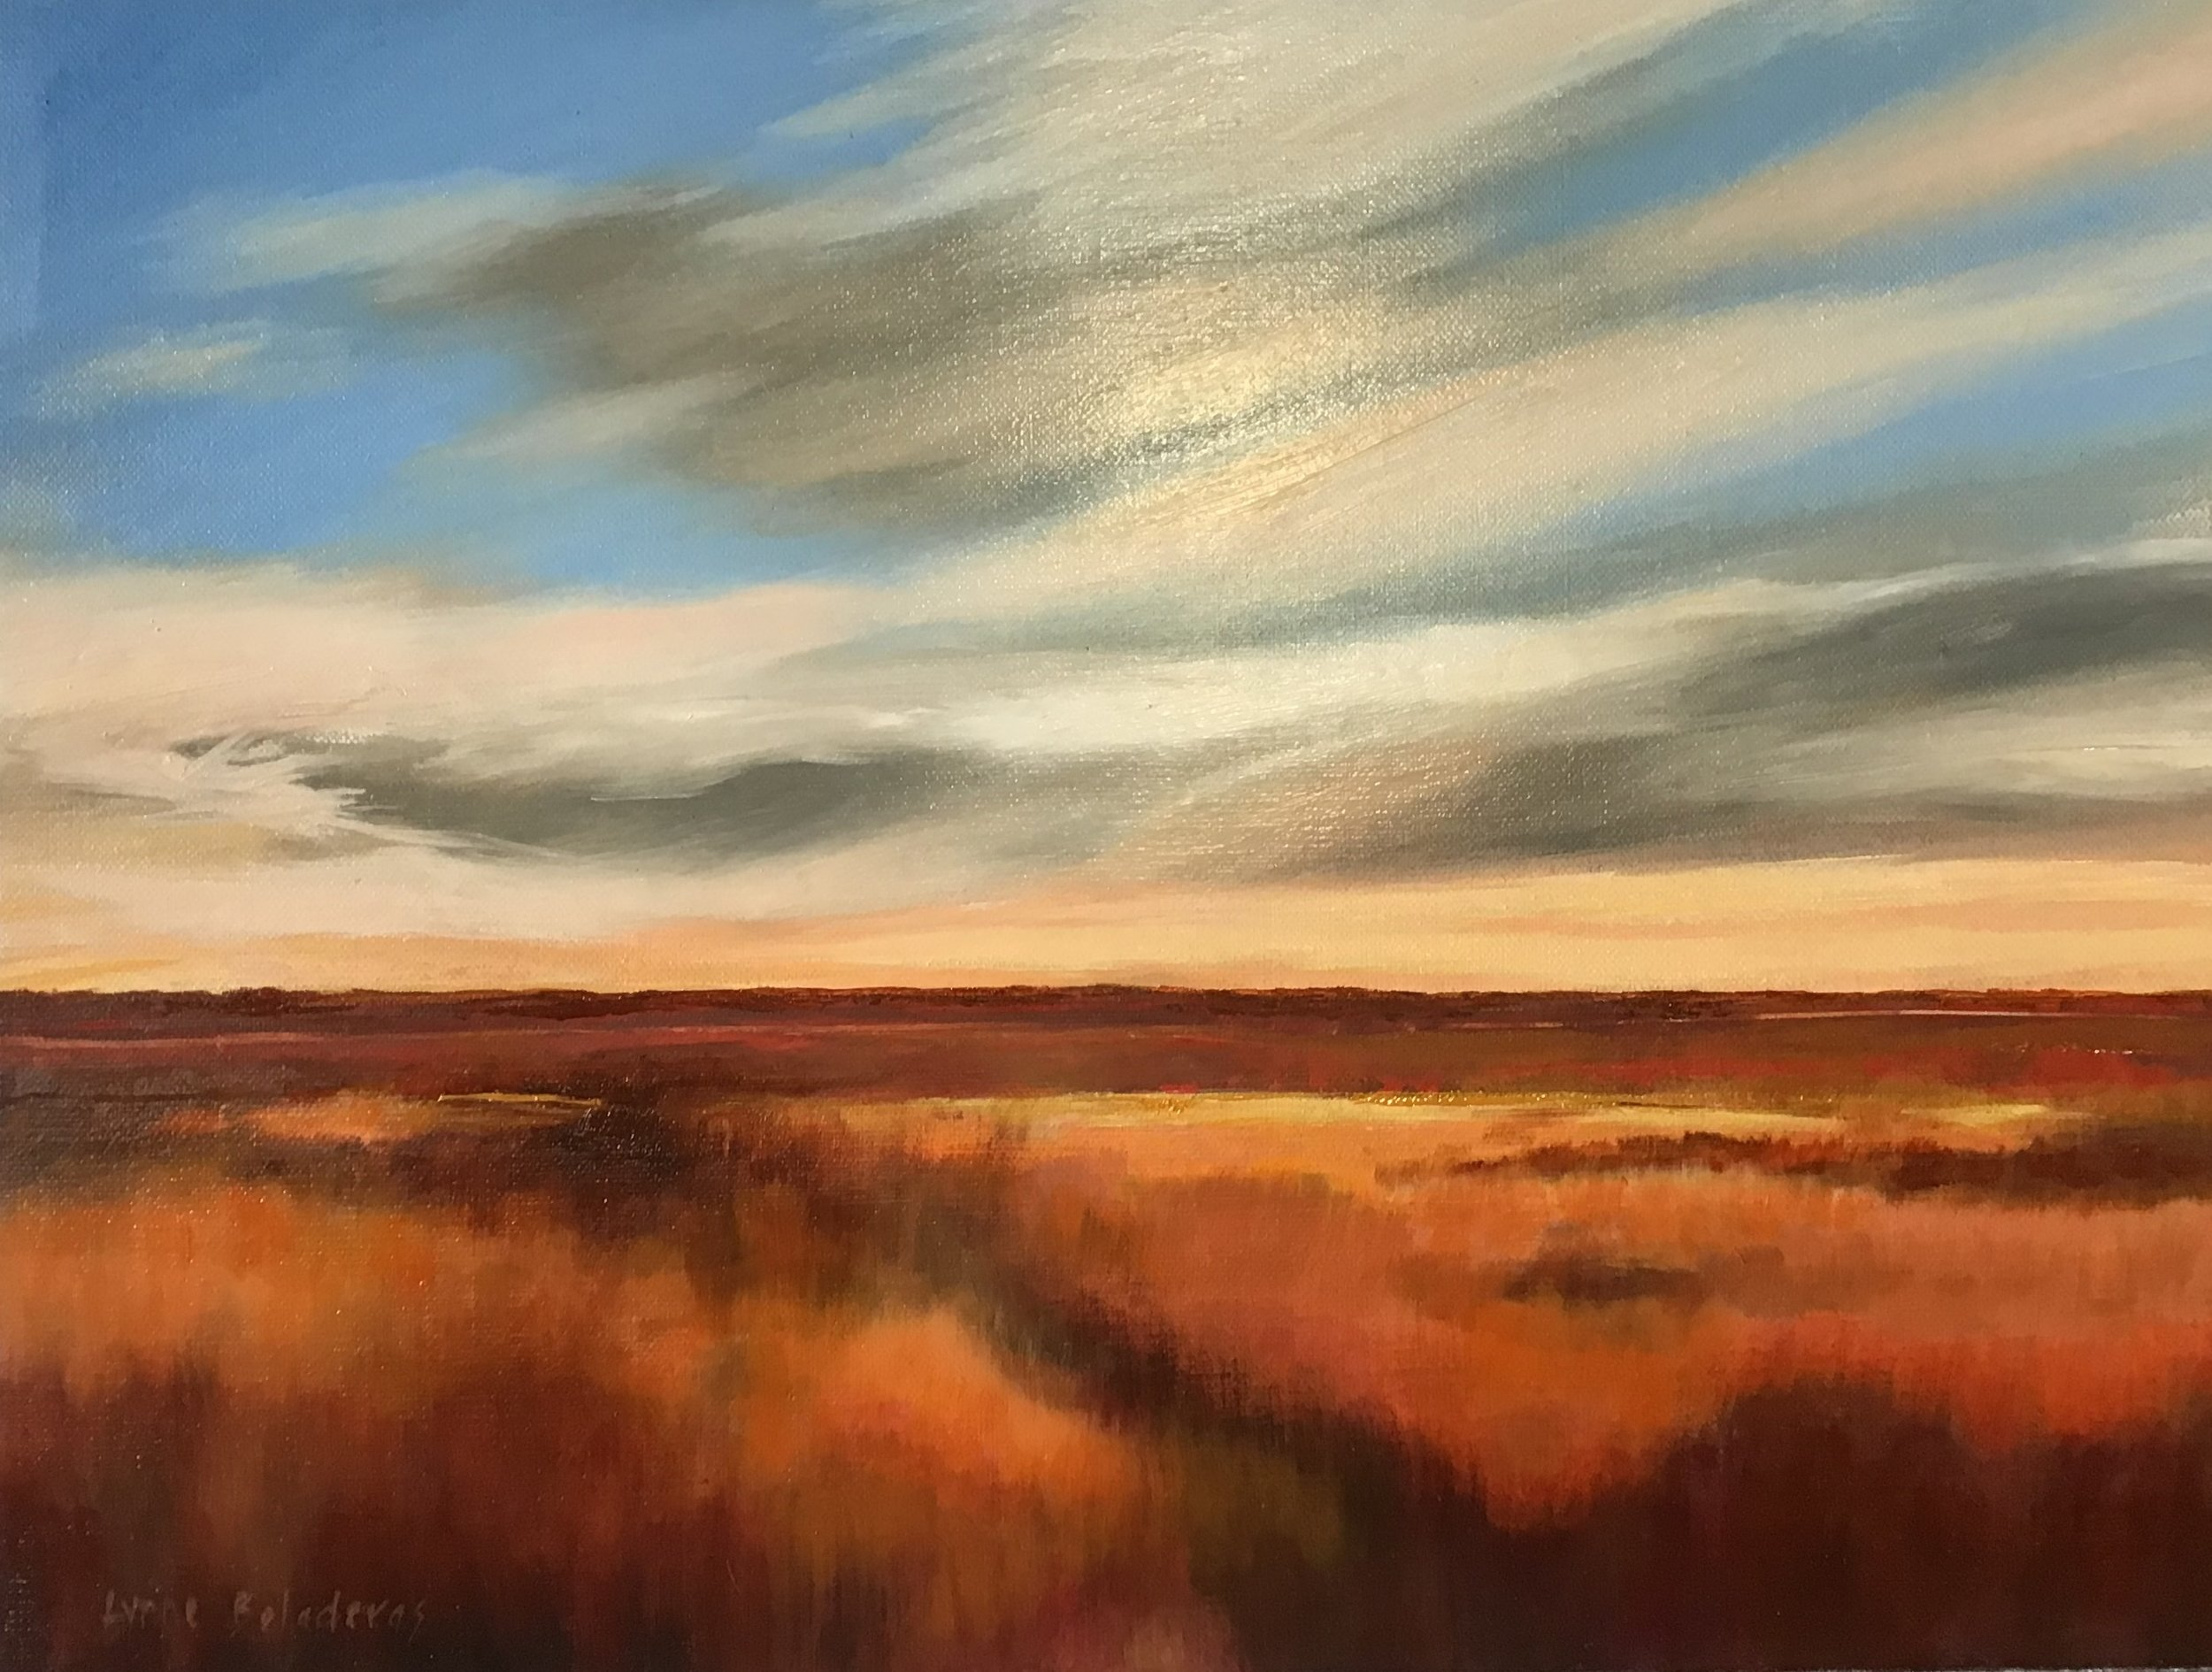 Lynne Boladeras_Time to Camp_Oil on Belgian Linen_30 x 40cm_$450.JPG